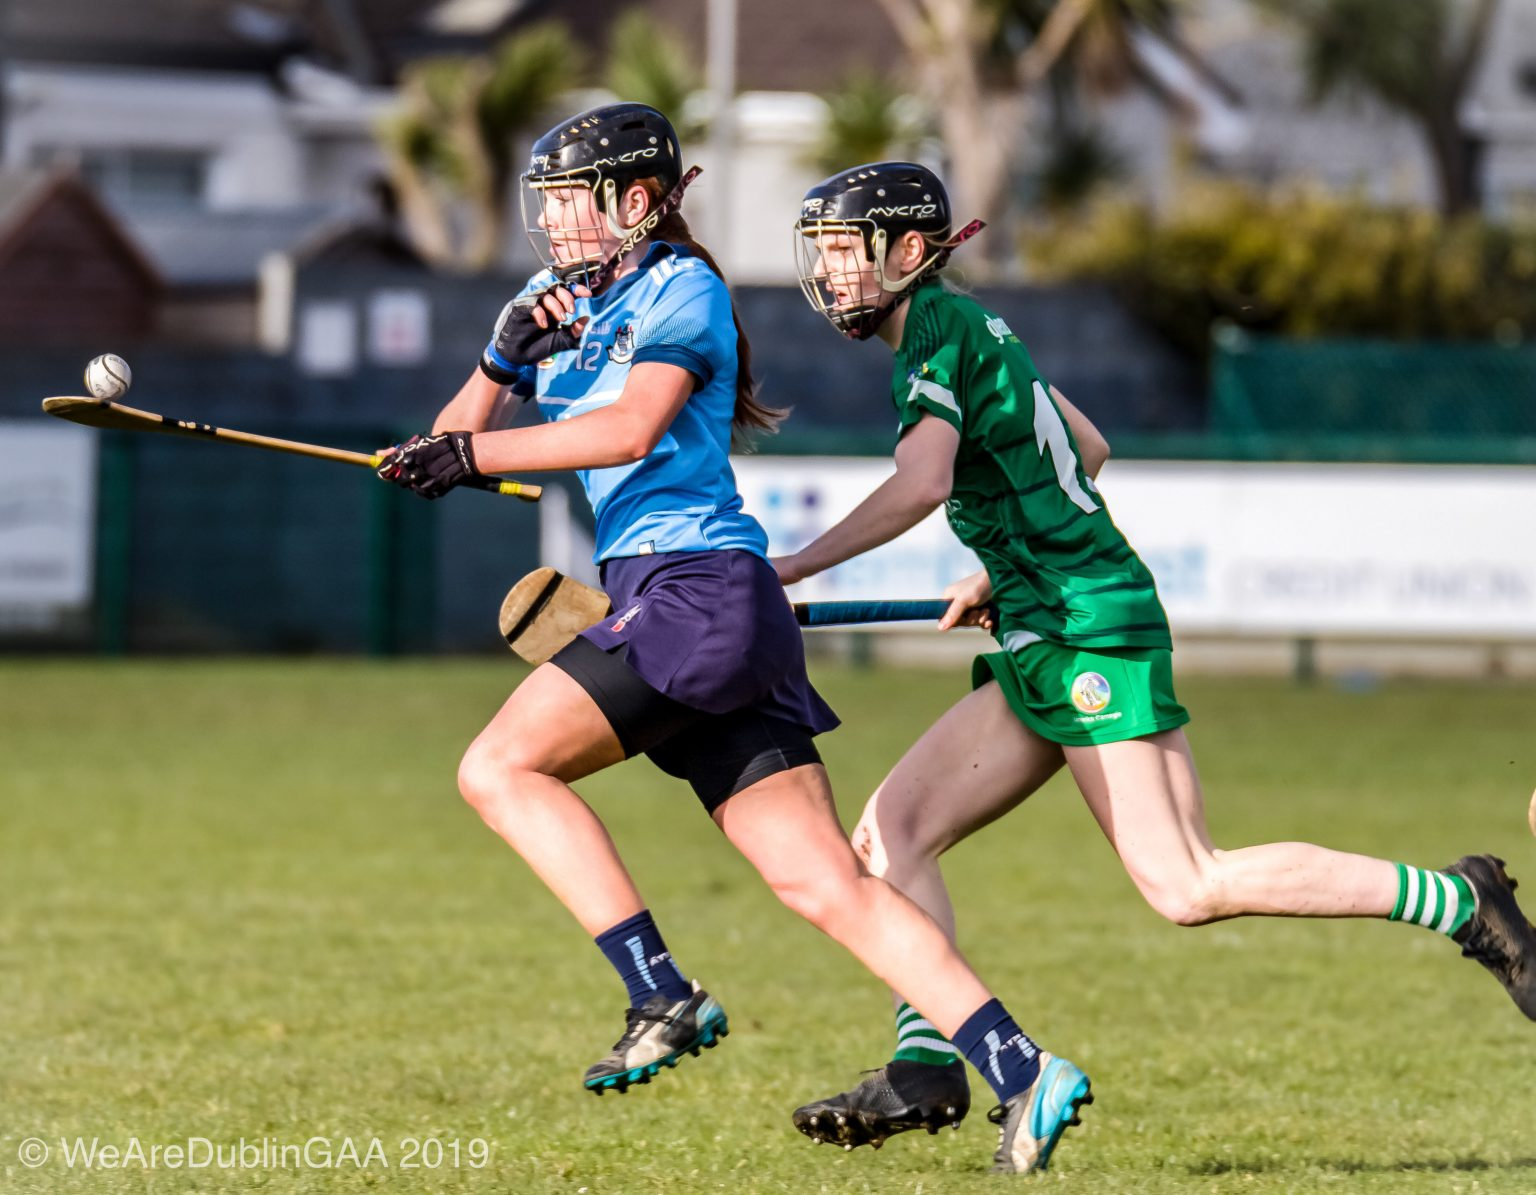 Dublin Camogie Player in a sky blue jersey, navy skort and Black Helmet races away balancing the ball on her girl from a Limerick player in a green Jersey and skort during the Littlewoods Ireland Camogie Leagues